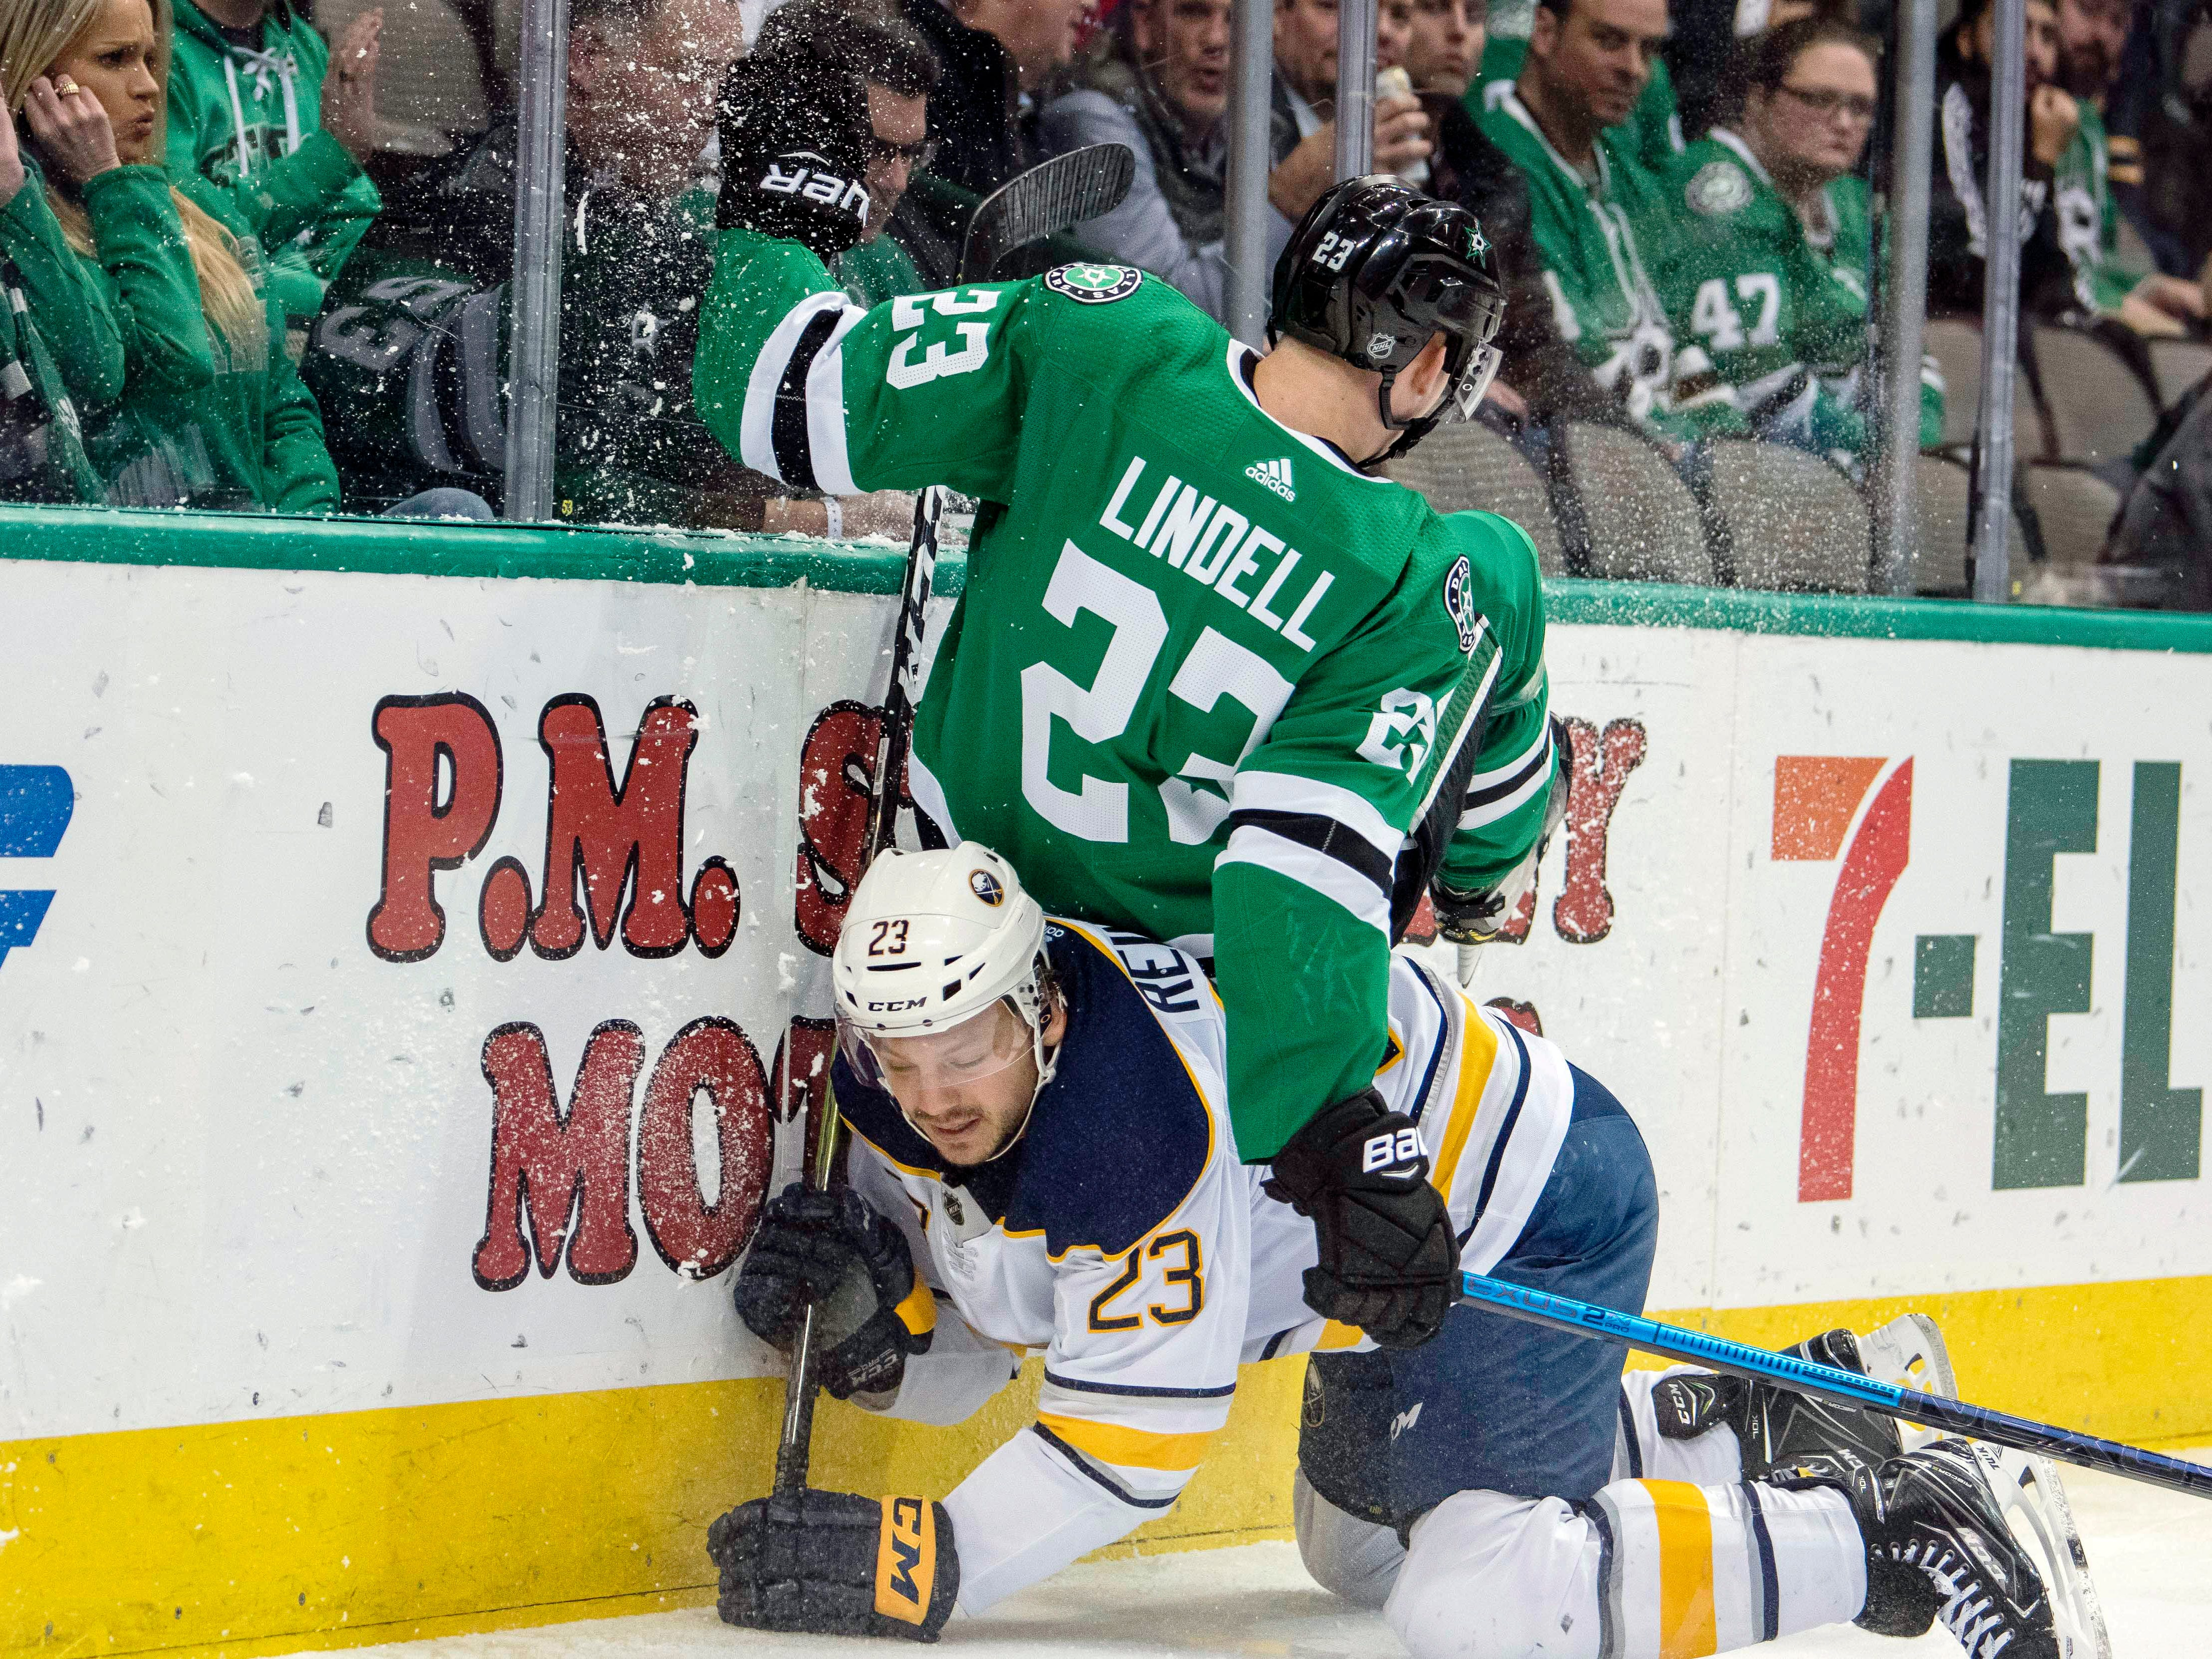 Jan. 30: Dallas Stars defenseman Esa Lindell and Buffalo Sabres center Sam Reinhart (23) crash into the boards during the first period at the American Airlines Center. The Stars won the game, 1-0.